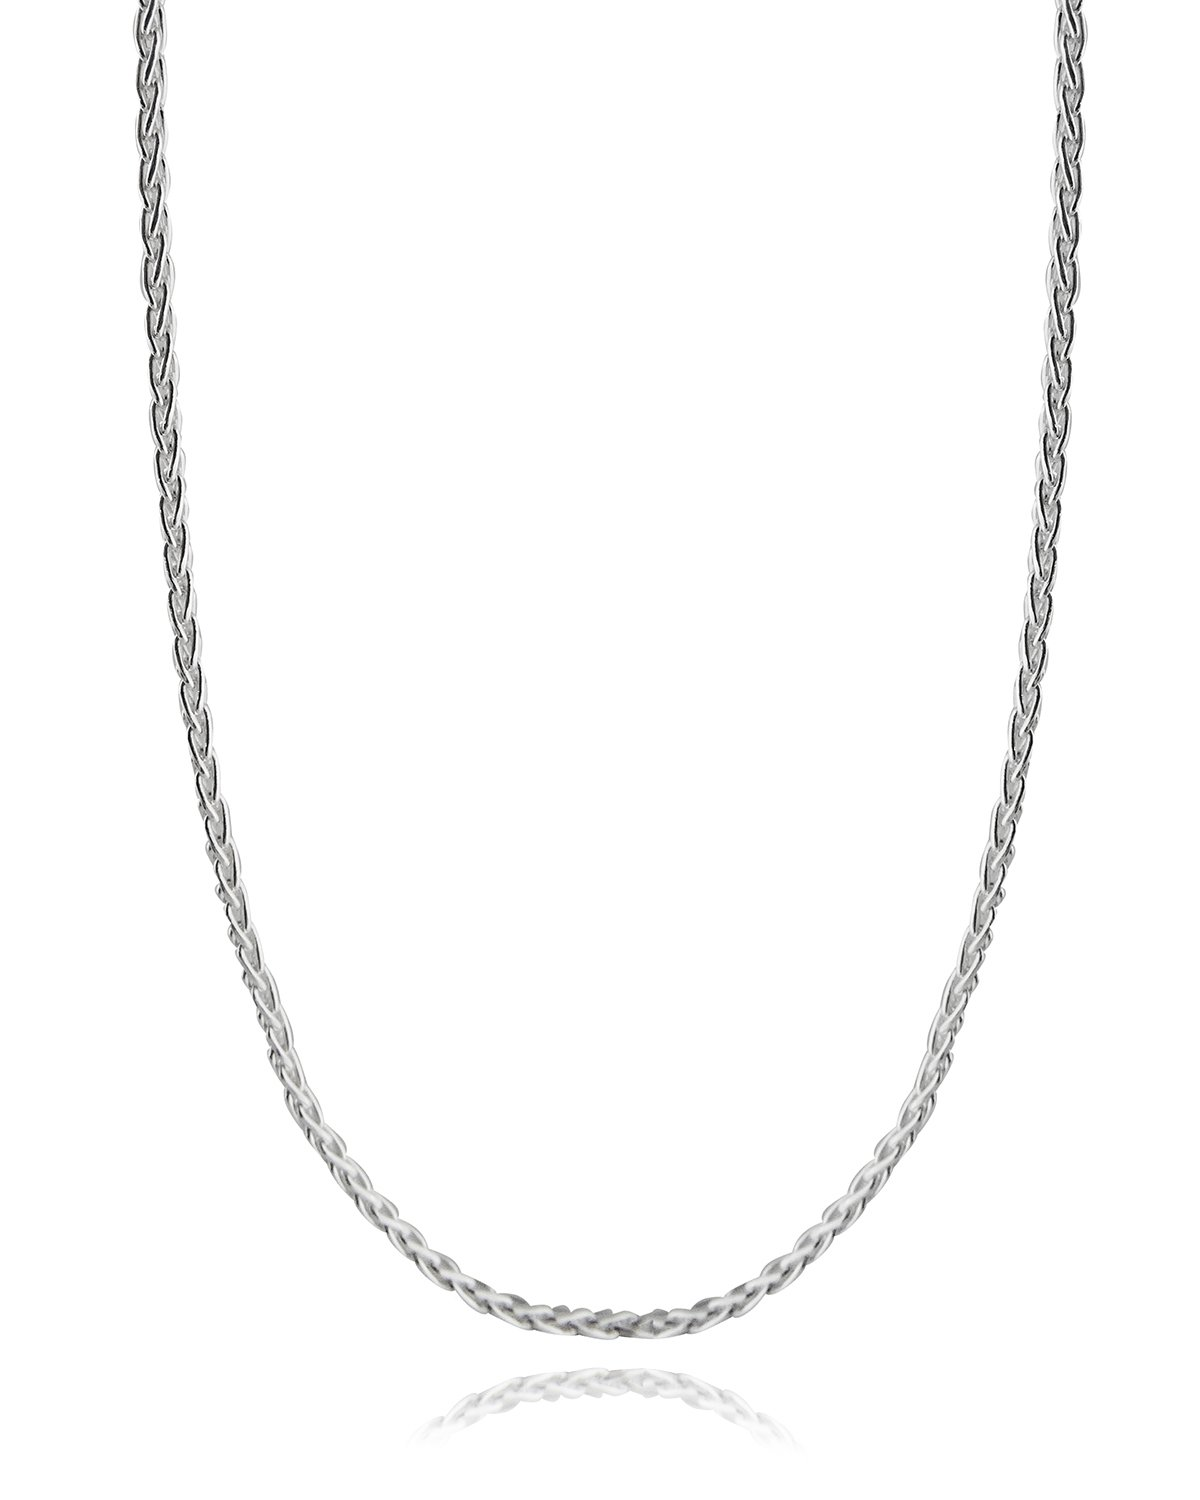 Italian 925 Sterling Silver 3mm Spiga Wheat Diamond Cut Chain Necklace - 16, 18, 24, 30 Inches (18) by FashionJunkie4Life (Image #5)